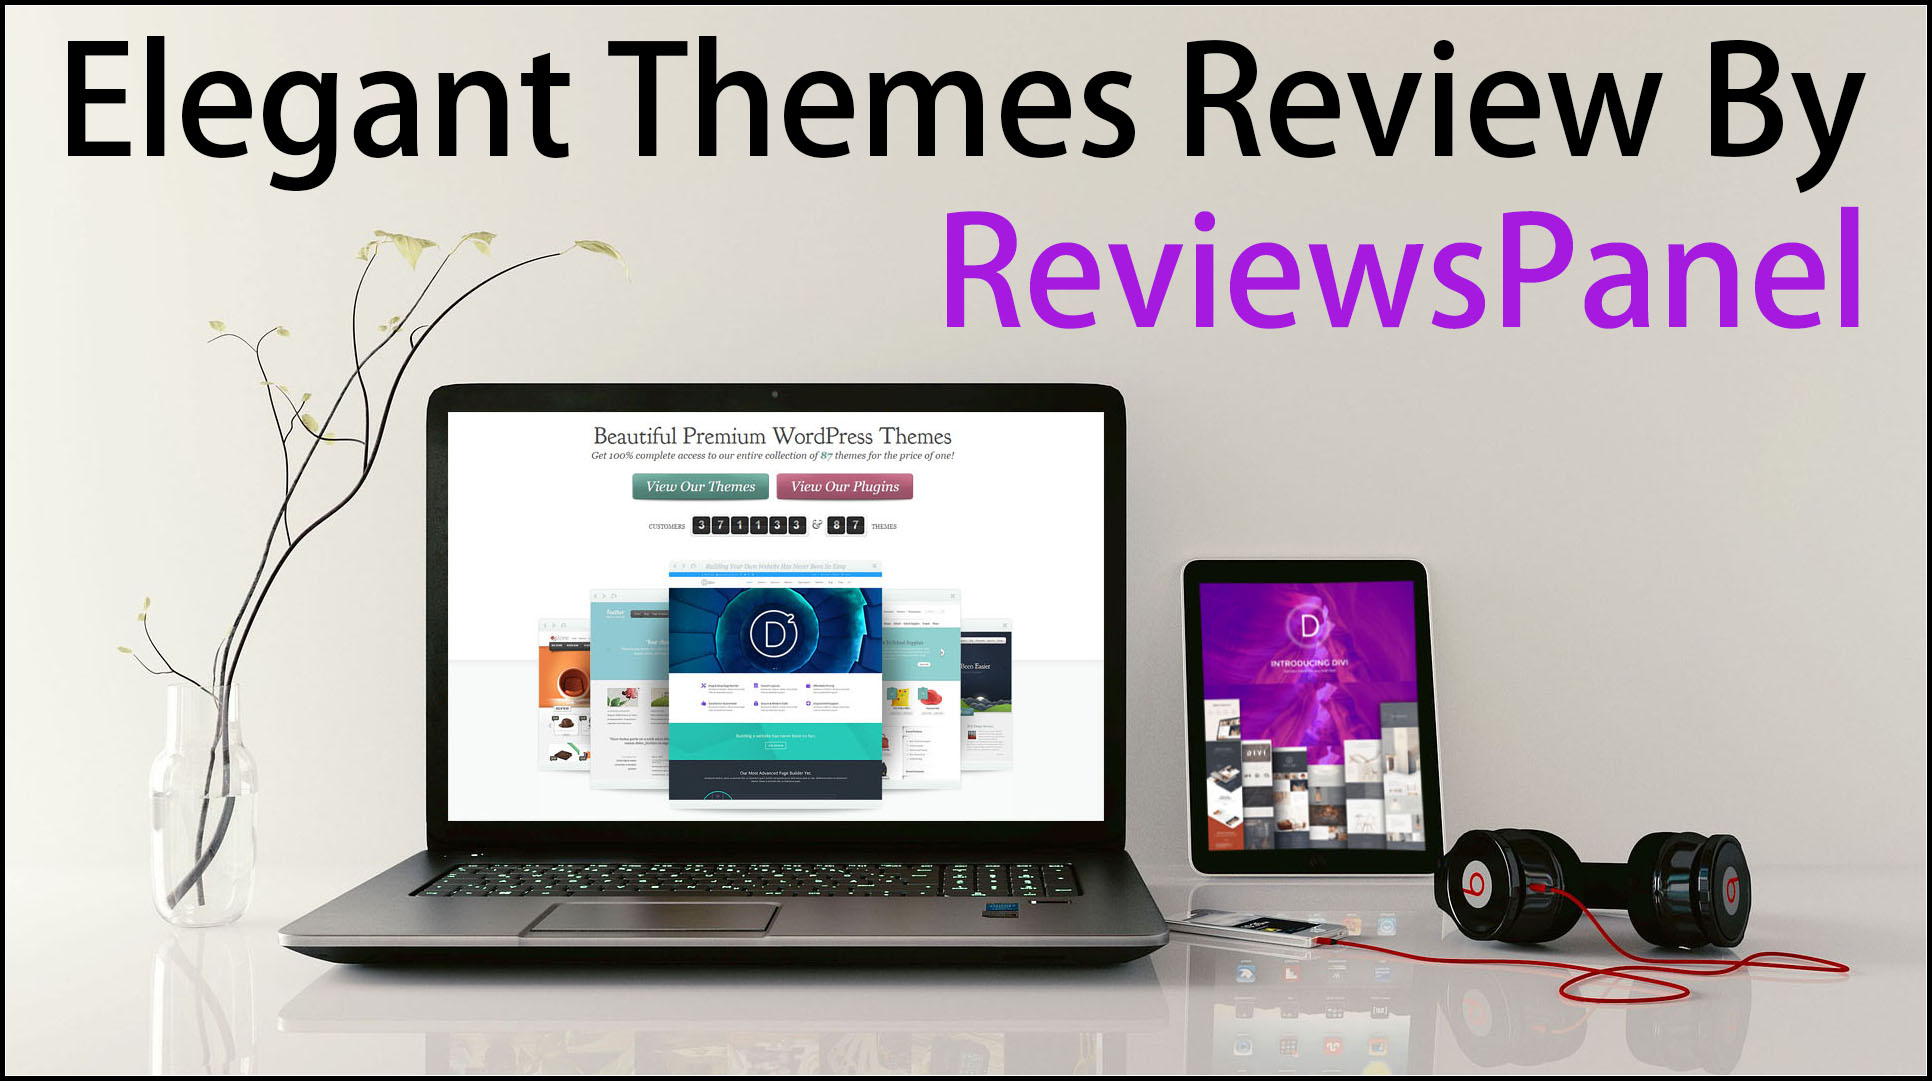 Elegant Themes Review: The Beautiful WordPress Themes Store